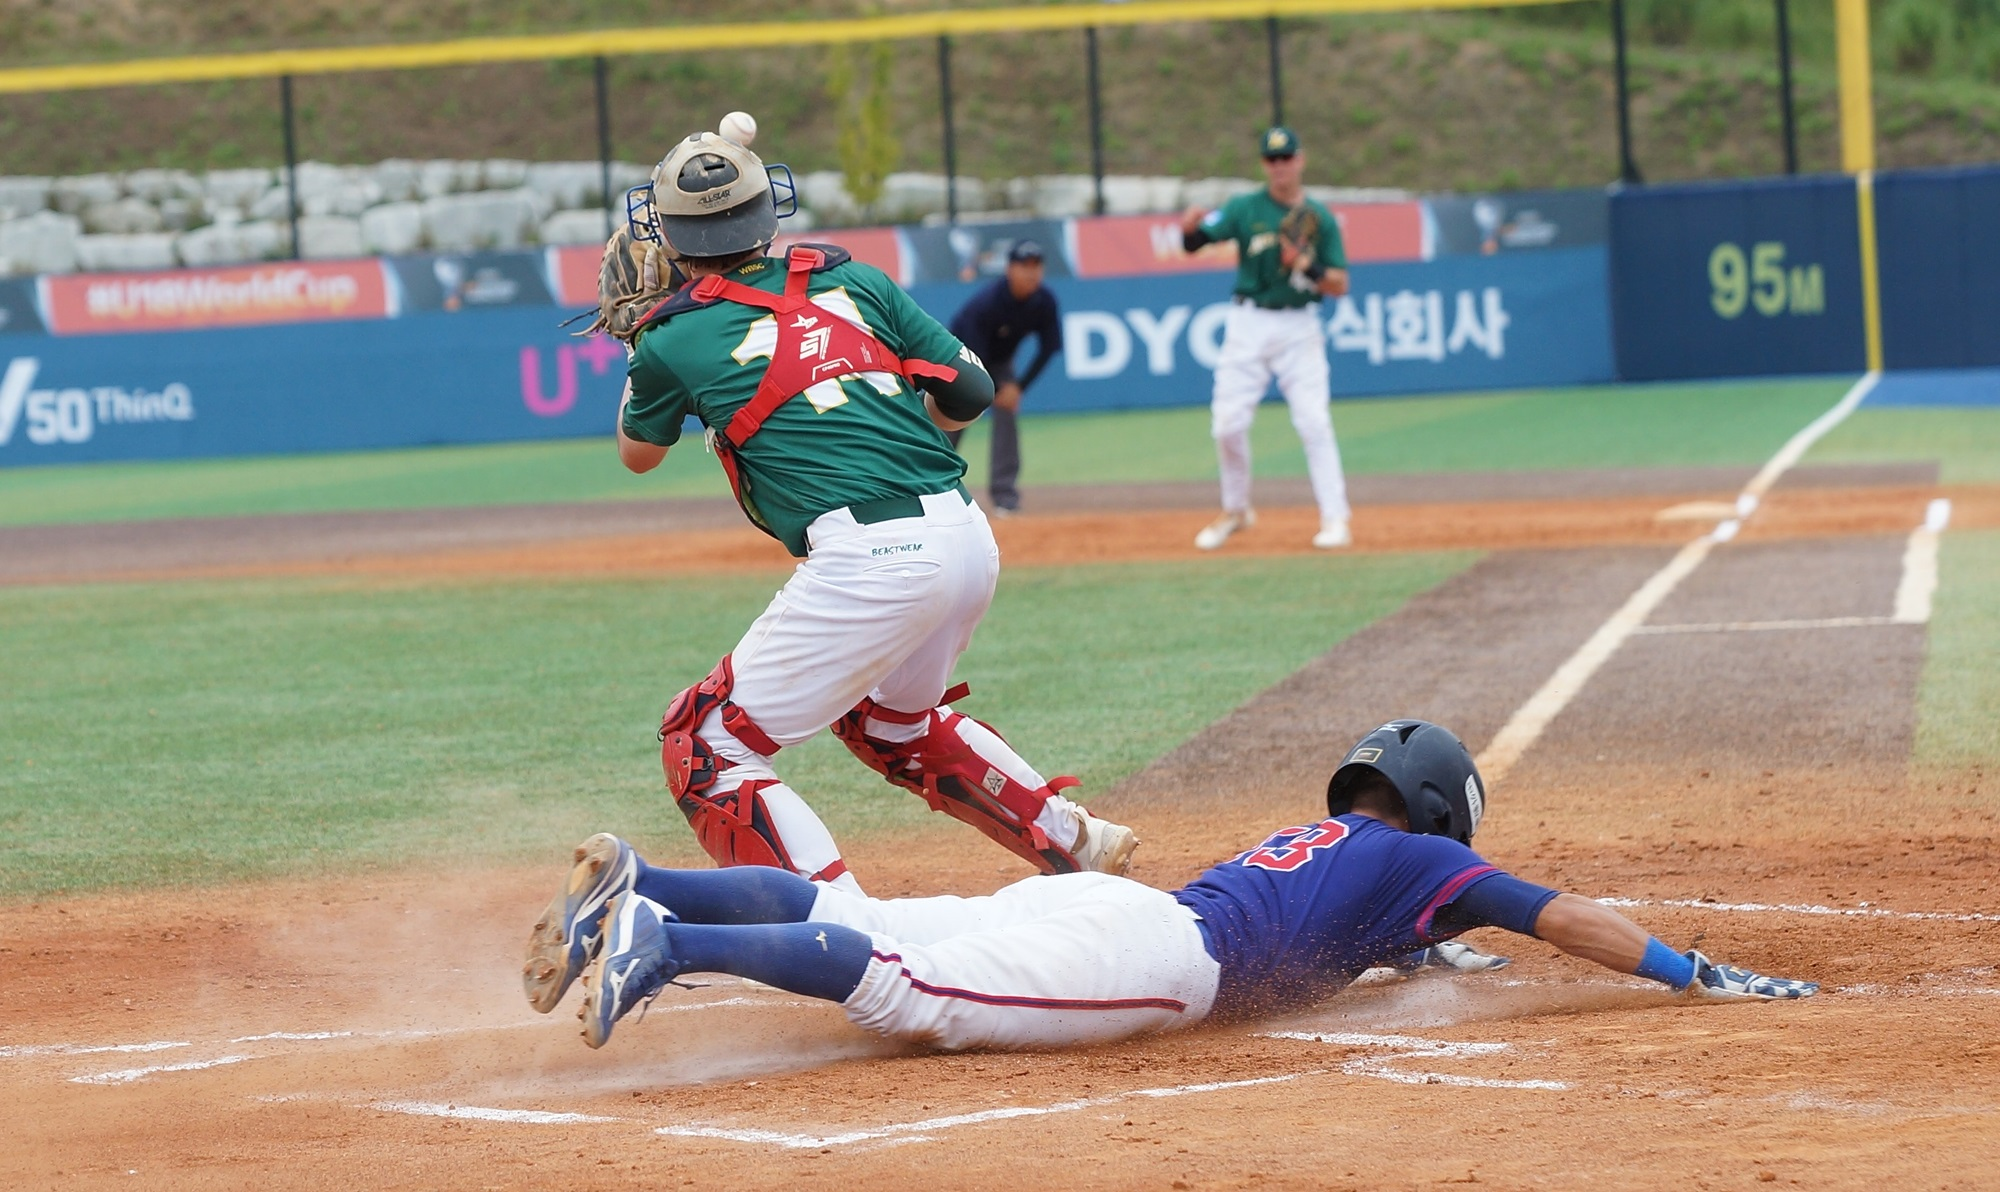 Chinese Taipei scores against Australia